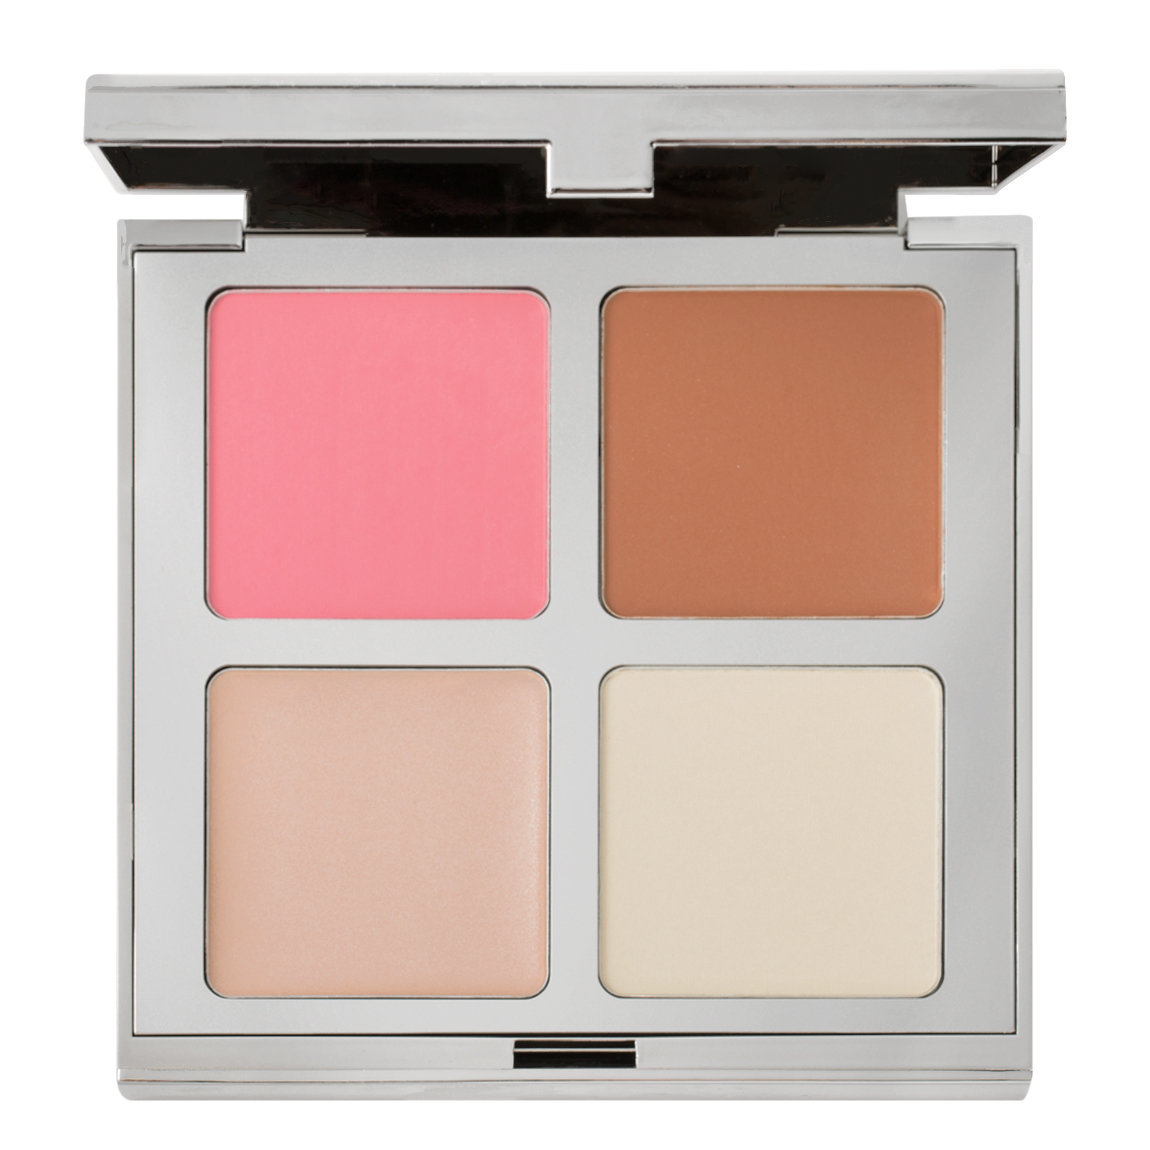 IT Cosmetics  IT'S Your Beauty Award-Winning Must-Haves Palette product swatch.